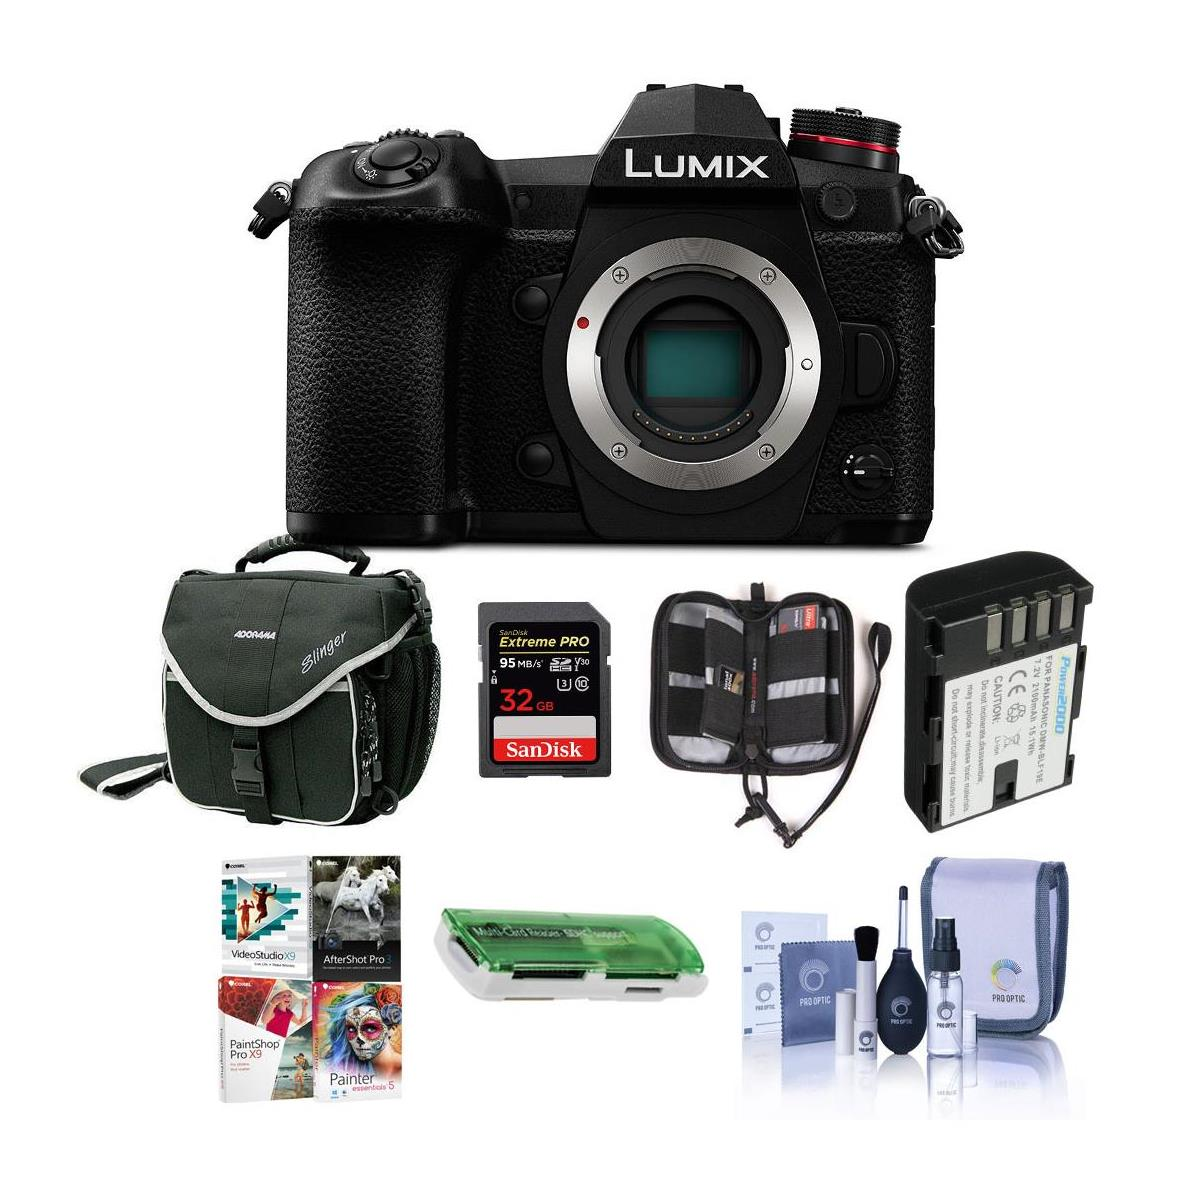 Hot Deal: Panaosnic Lumix DC-G9 With Accessories Kit for $997.99!